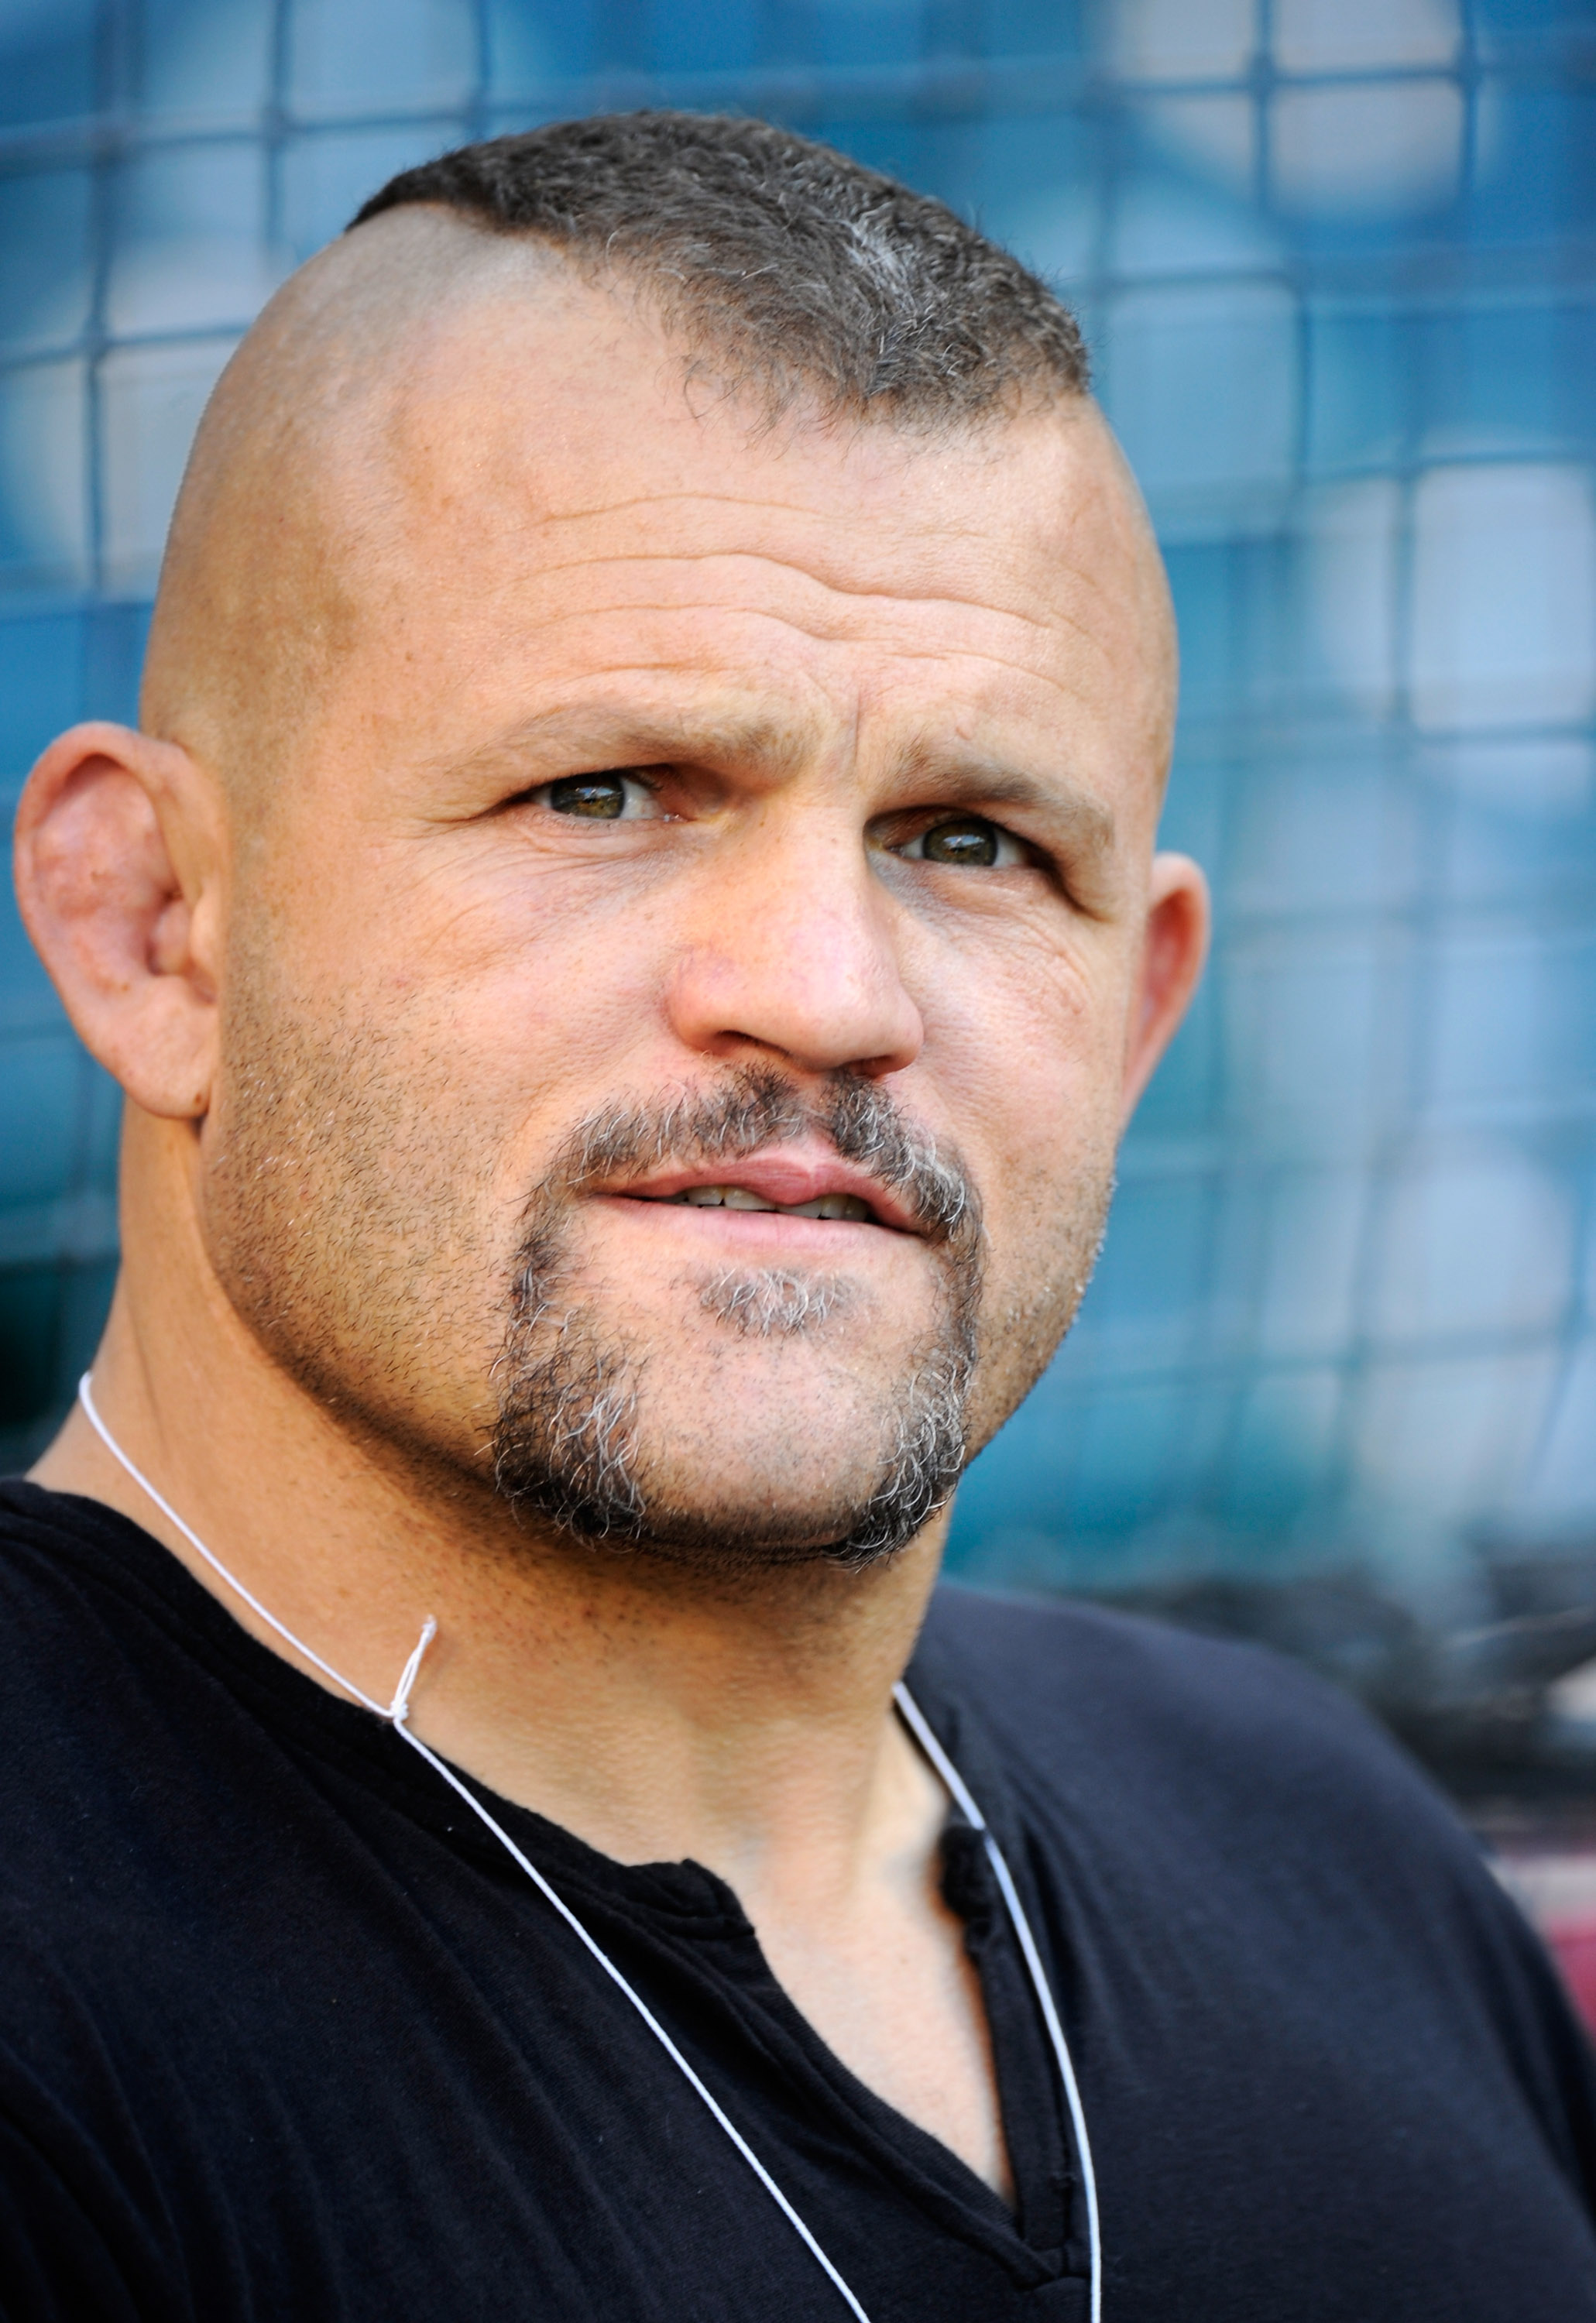 ANAHEIM, CA - MAY 25:  Chuck Liddell, the American mixed martial artist and former Ultimate Fighting Championship light heavyweight champion, attends the baseball game between the Oakland Athletics and the Los Angeles Angels of Anaheim at Angel Stadium of